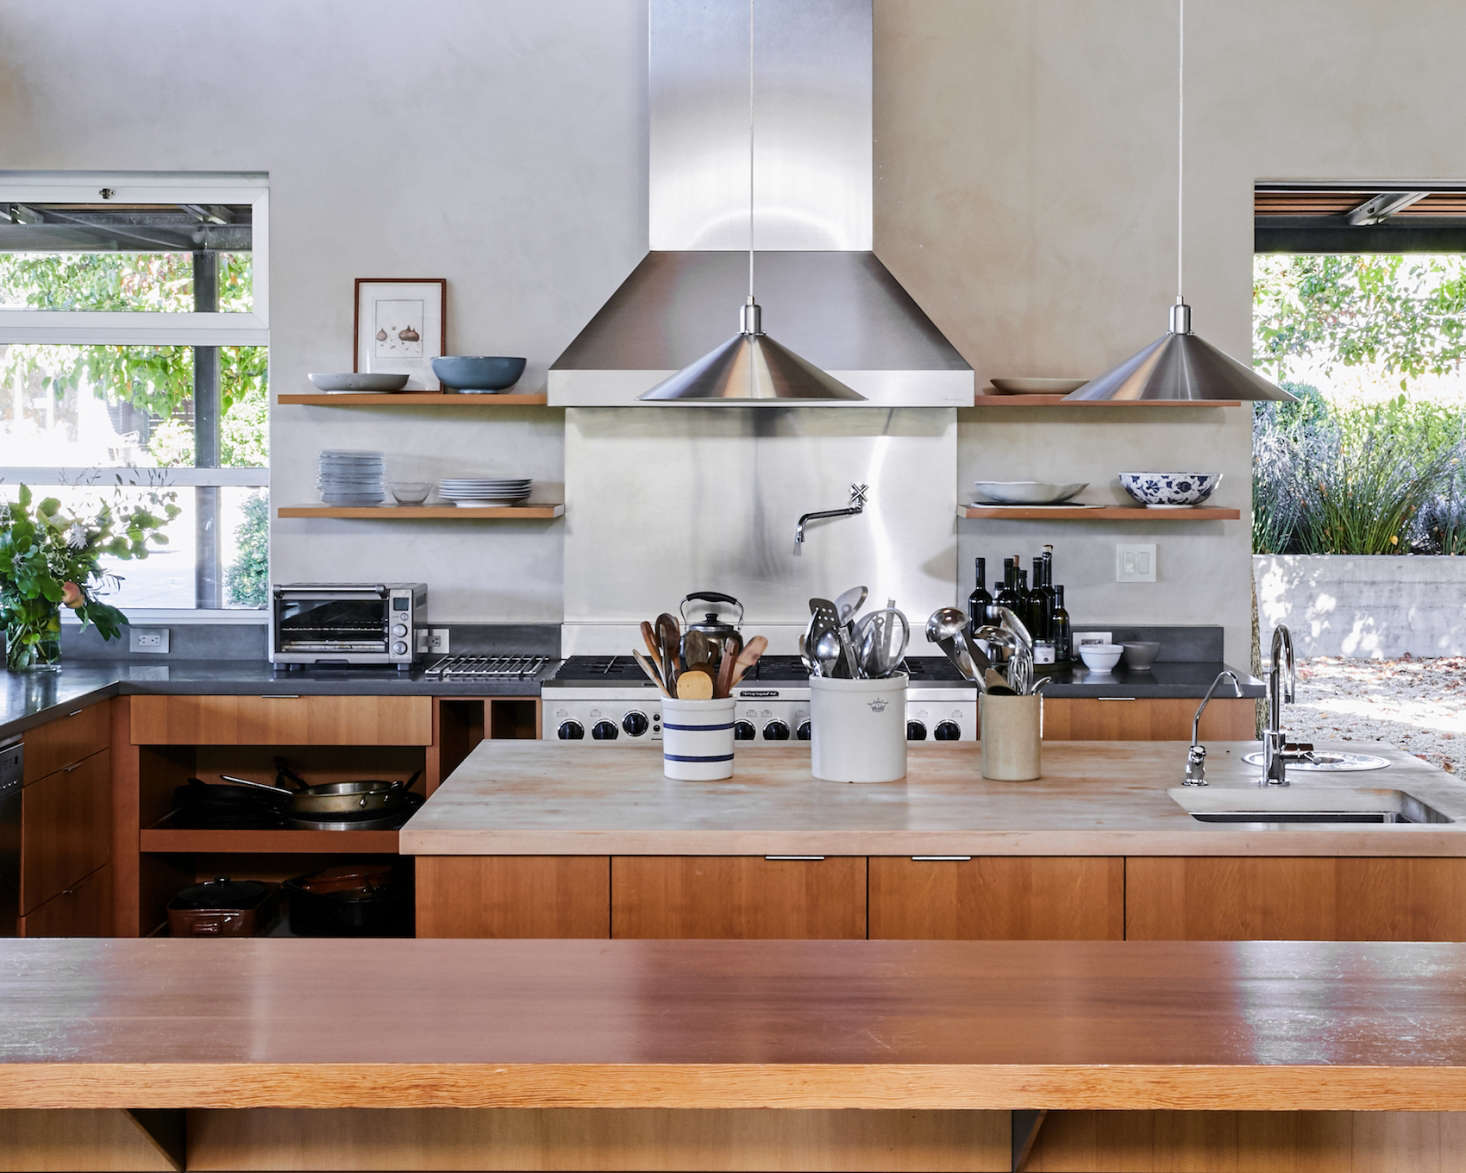 The Large Central Island Has A Butcher Block Countertop, Integrated Sink  And Compost Pail,